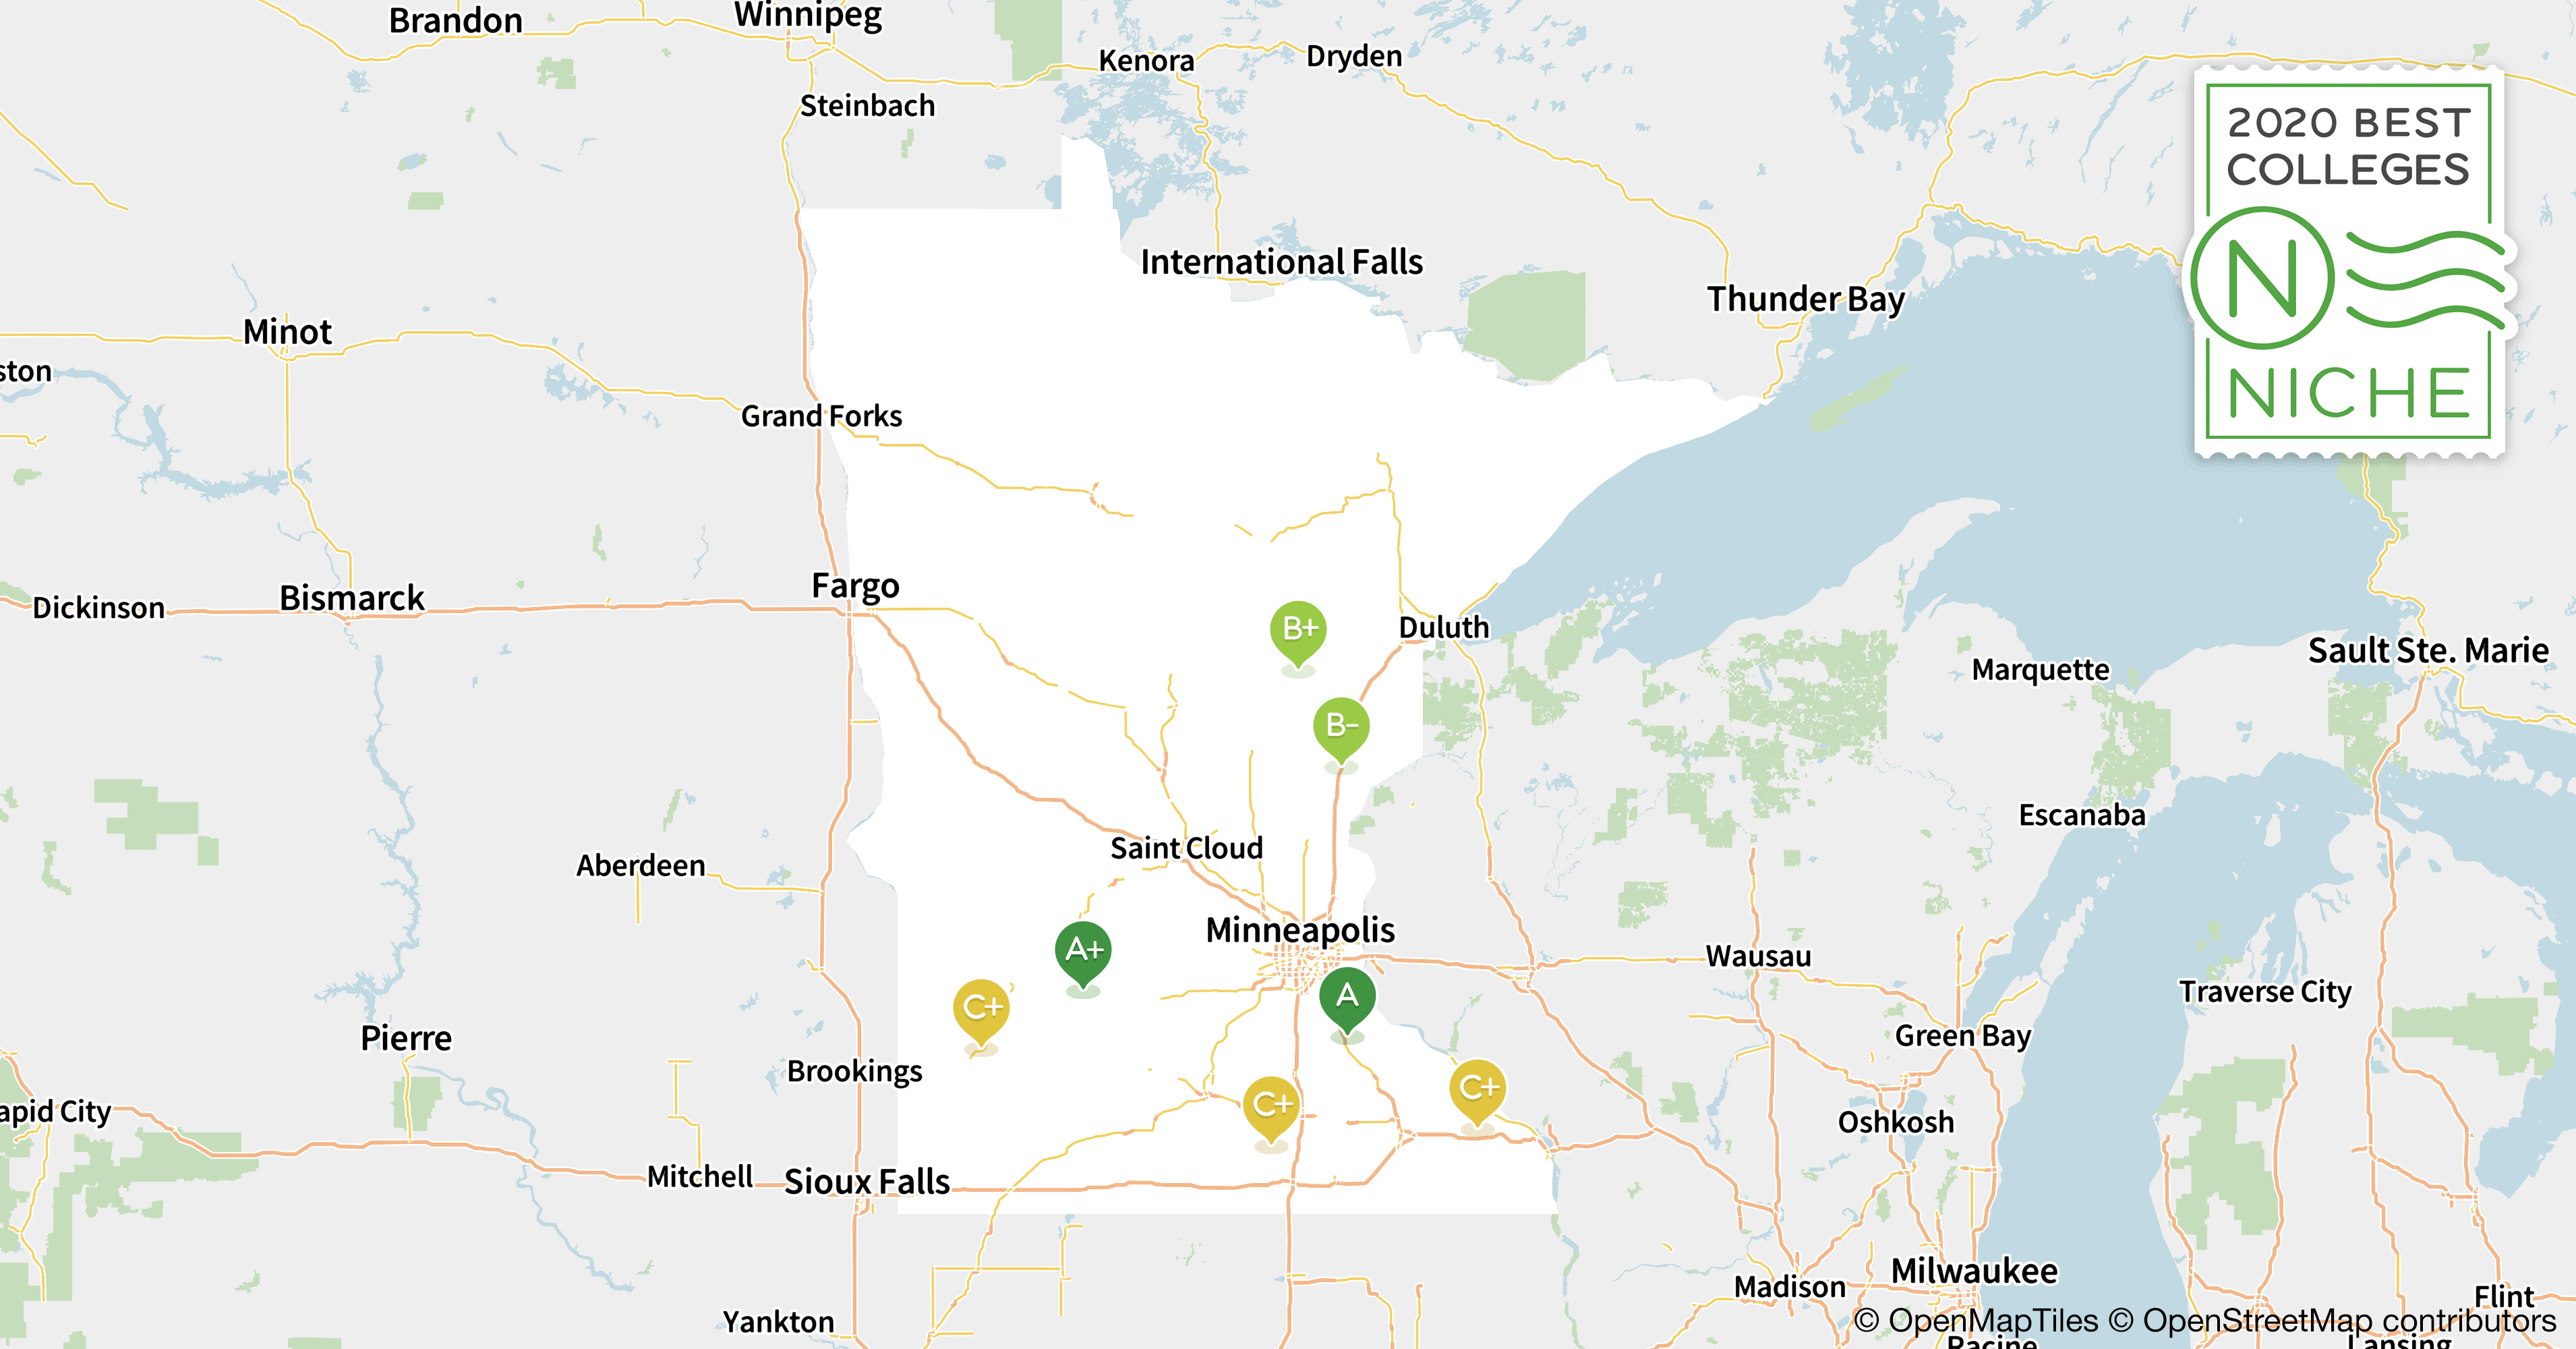 2020 Best Colleges in Minnesota - Niche Map Minn on ind map, shakopee map, eagan map, tresure map, london map, plymouth map, wisconsin map, mille lacs lake map, mankato map, hastings map, bloomington map, edina map, blaine mn map, minnesota map, mn highway map, moorhead map, michigan map, texas map, minneapolis map, mich map,